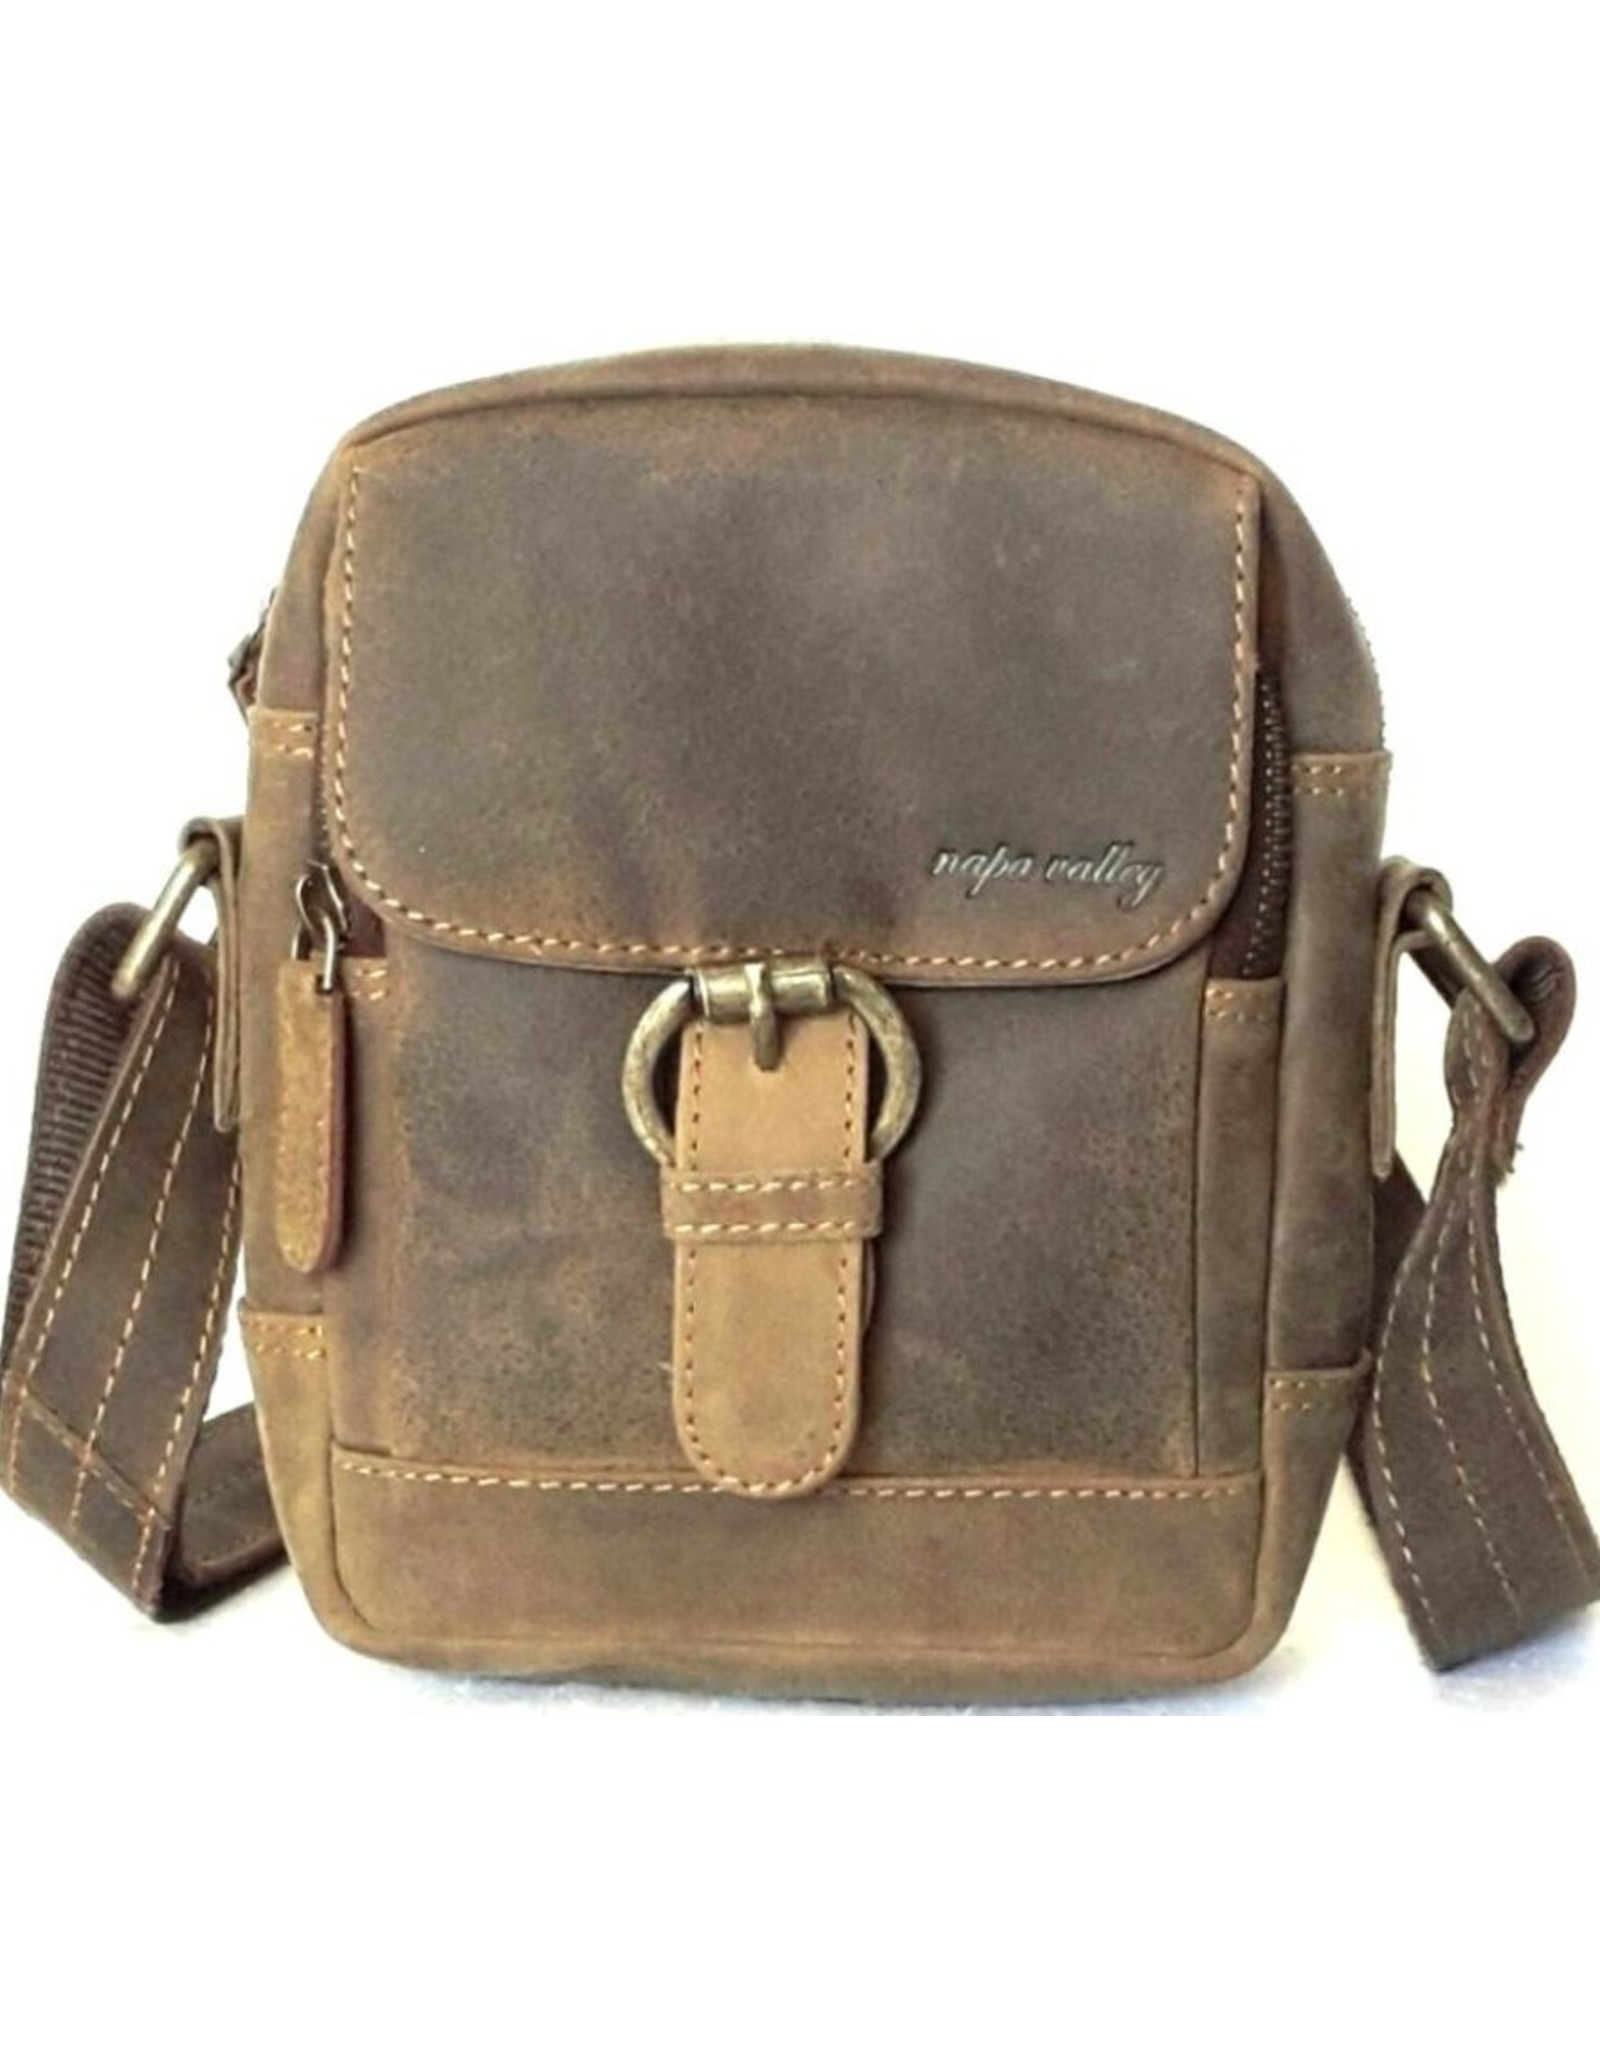 Napa Valley Leather shoulder bags Leather crossbody bags - Leather crossbody bag Napa Valley olive (small)